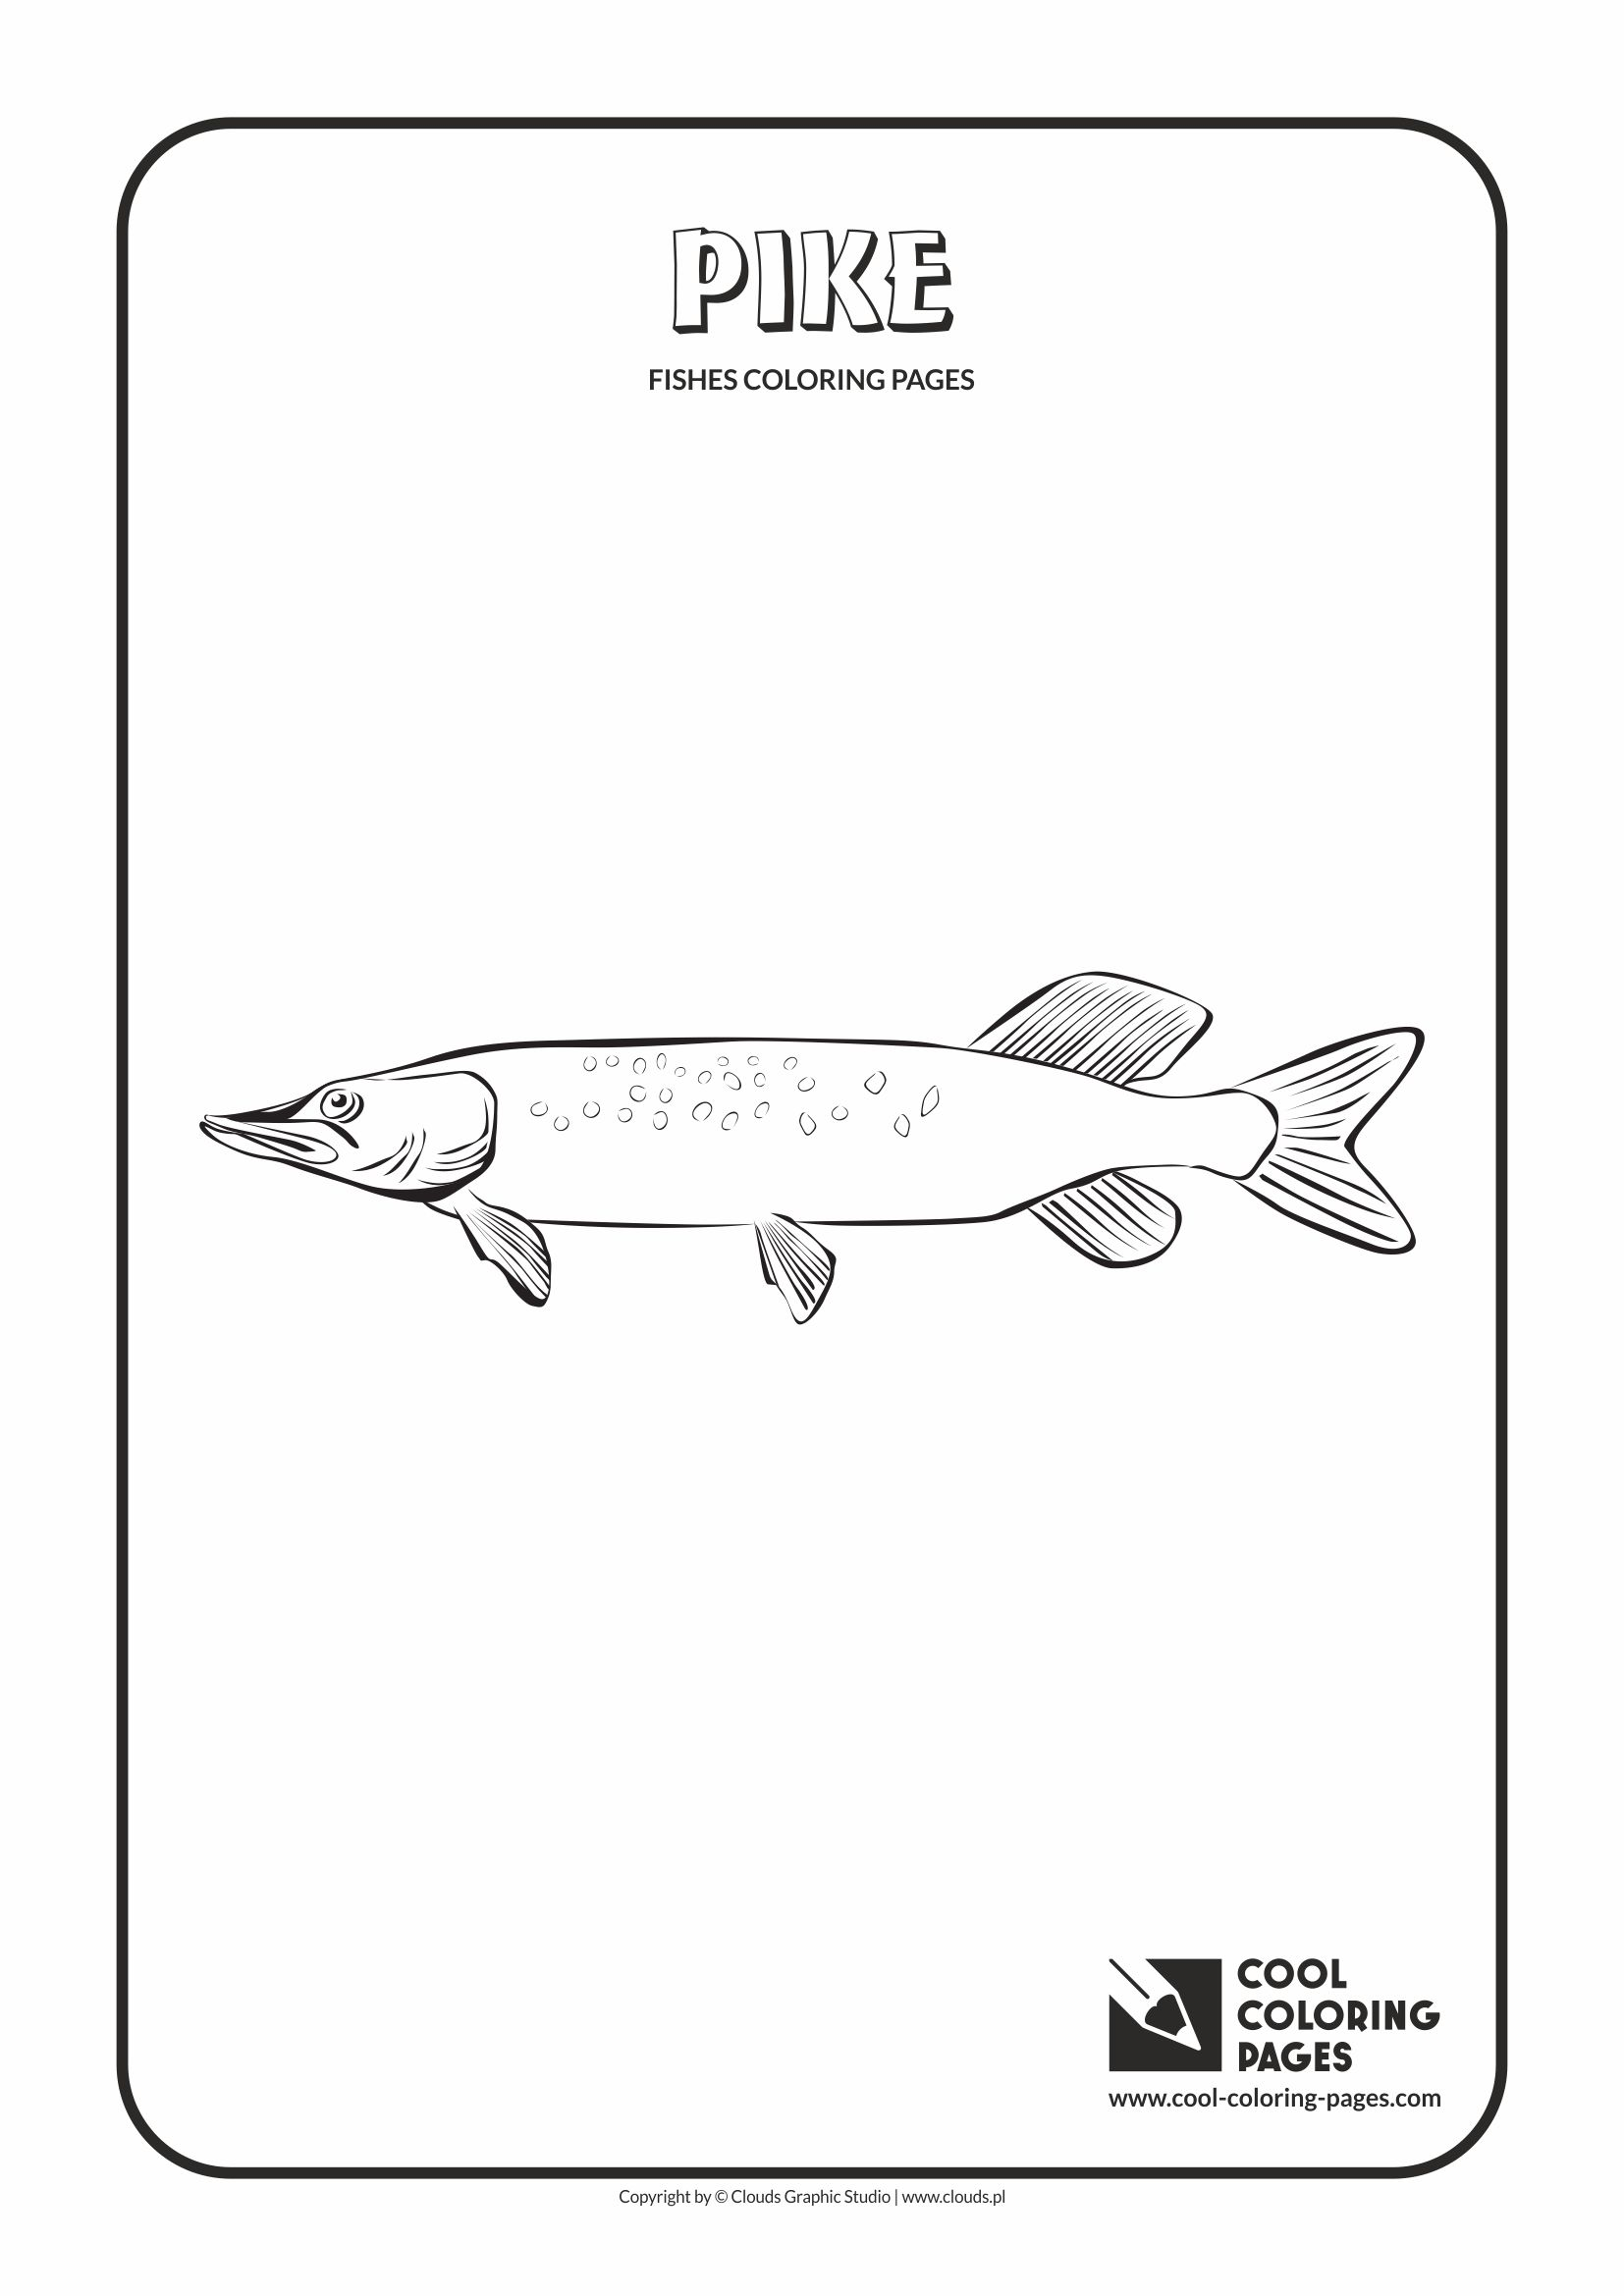 Cool Coloring Pages - Animals / Pike / Coloring page with pike